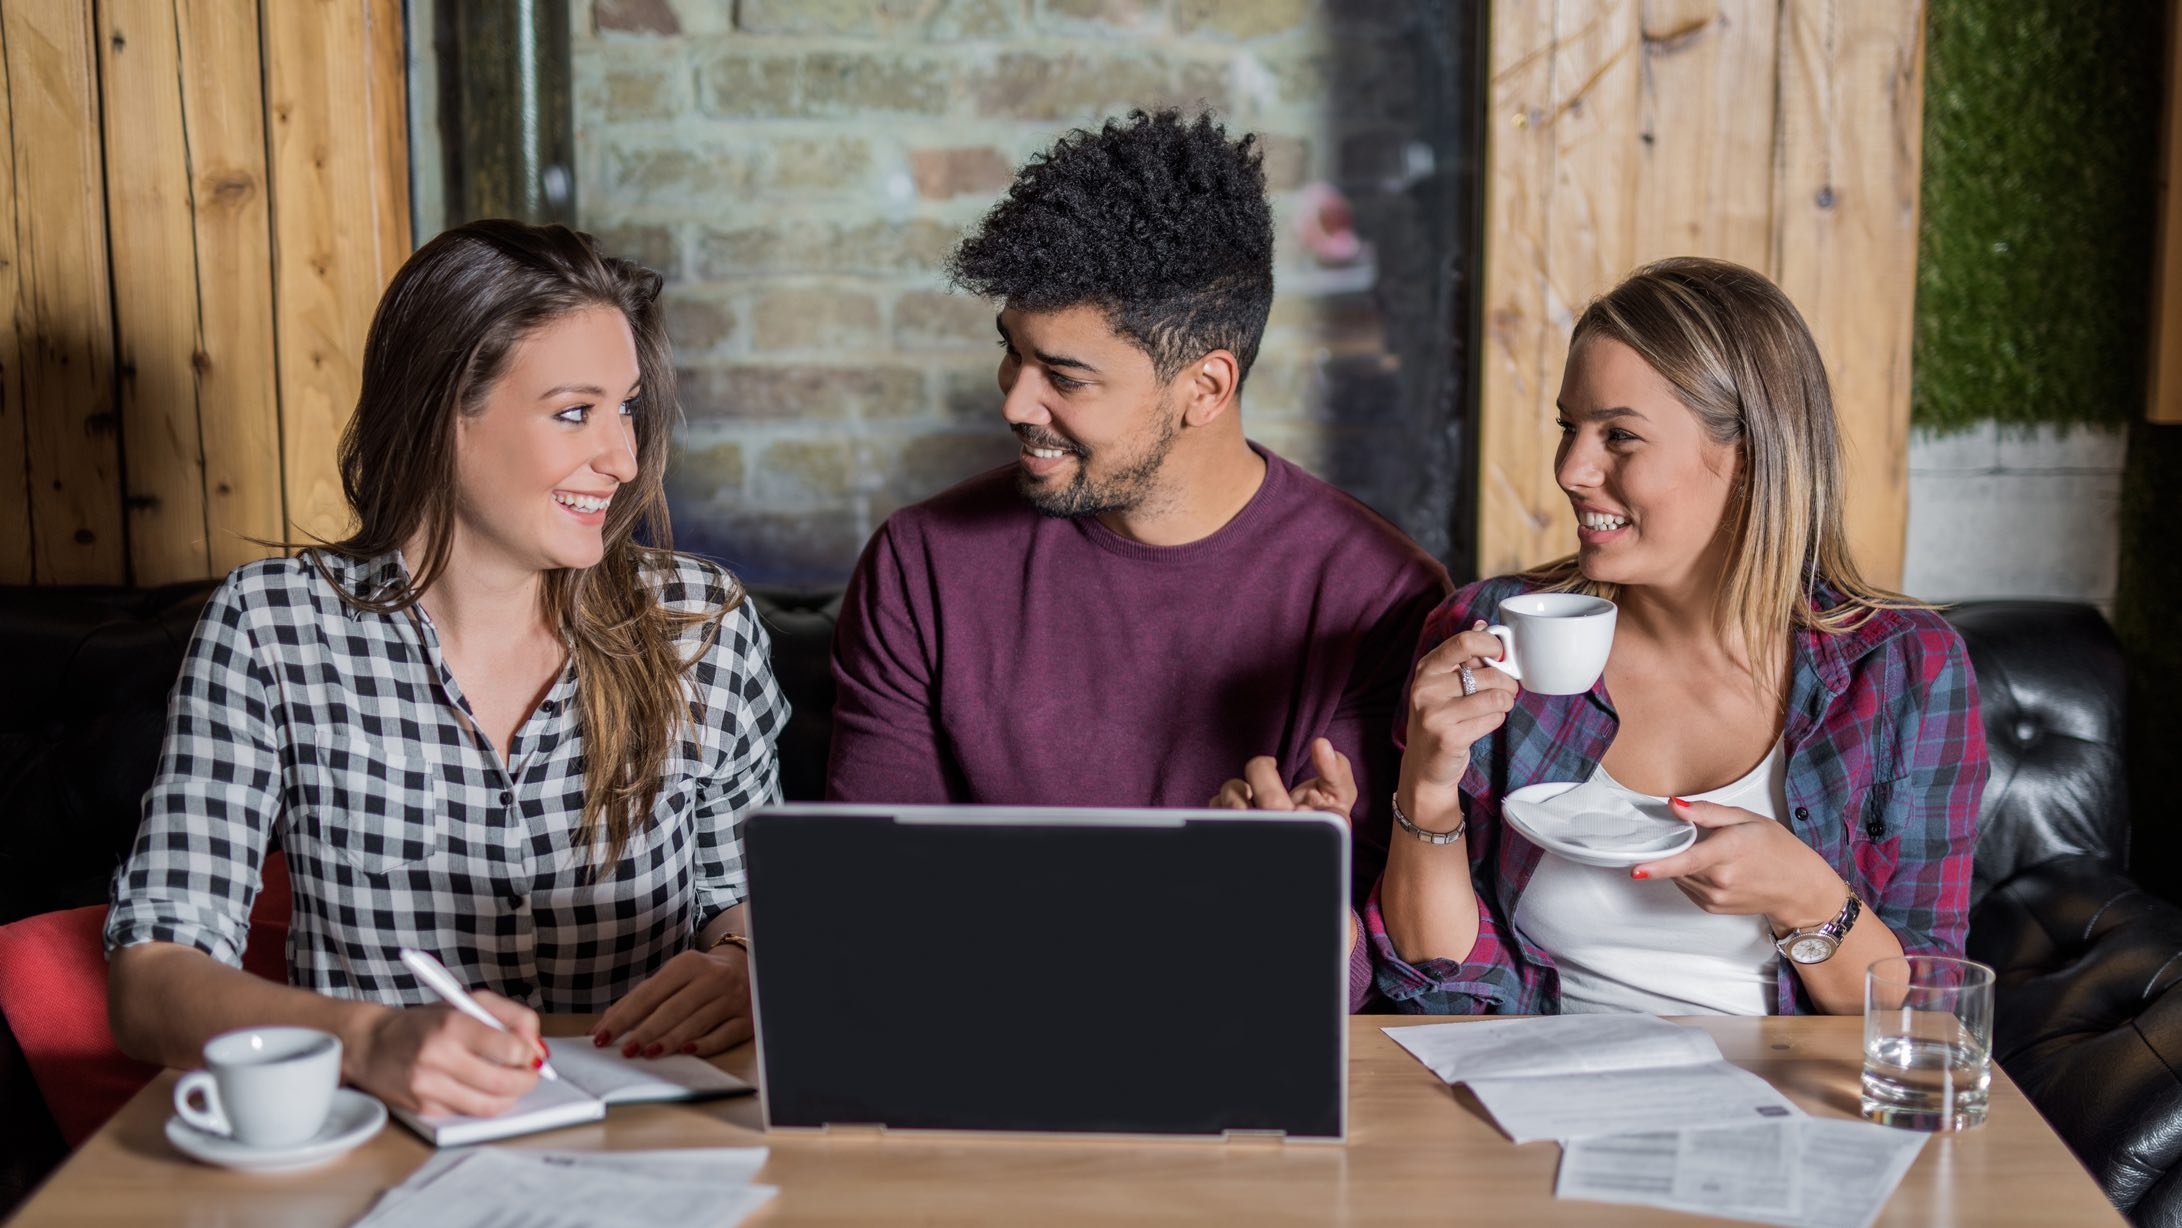 Three people sitting at a table drinking coffee, looking at paperwork and a laptop as they assess savings account interest rates.